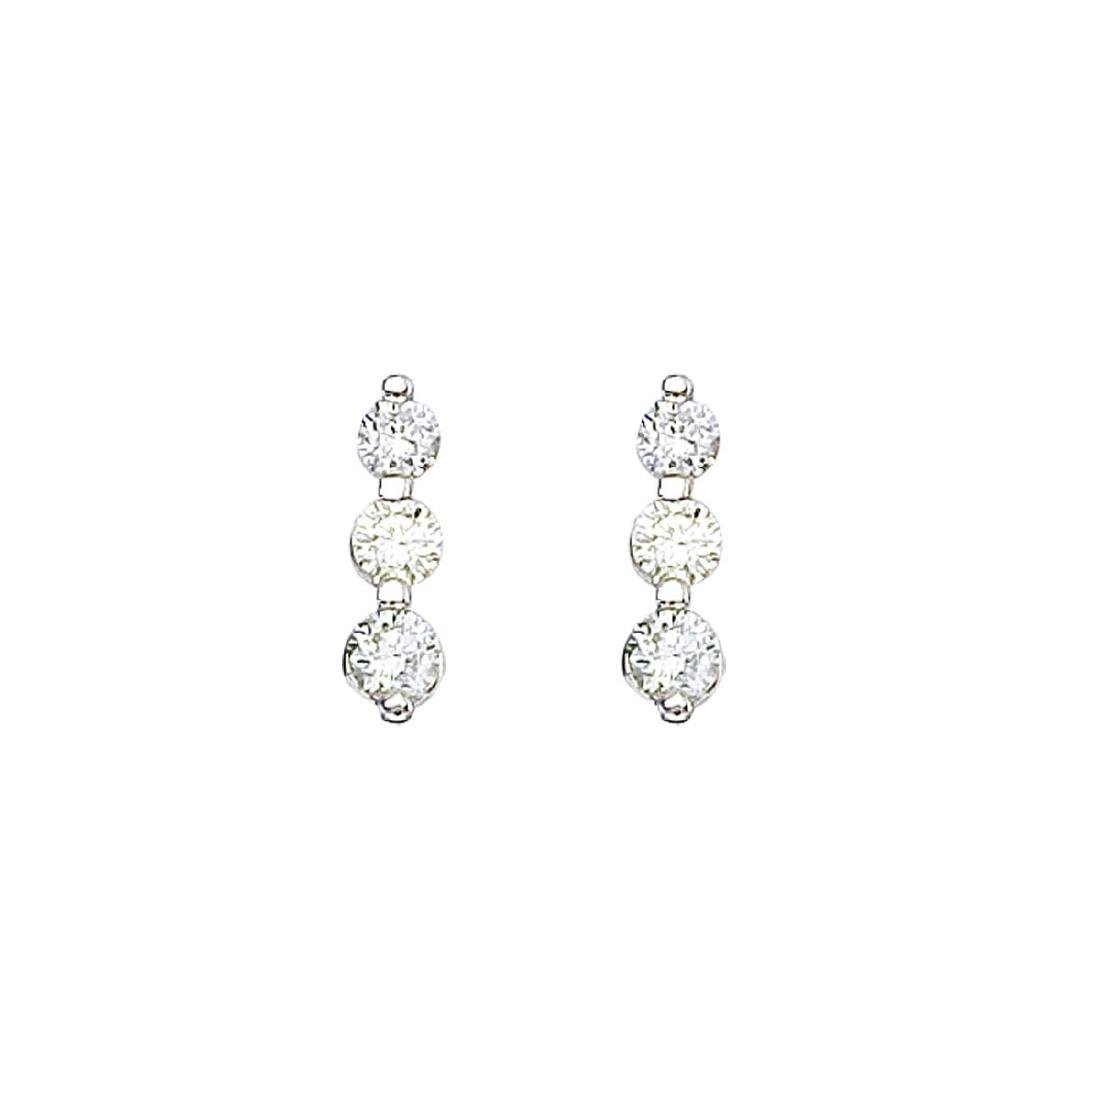 Certified 14k White Gold .50 ct 3 Stone Diamond Earring